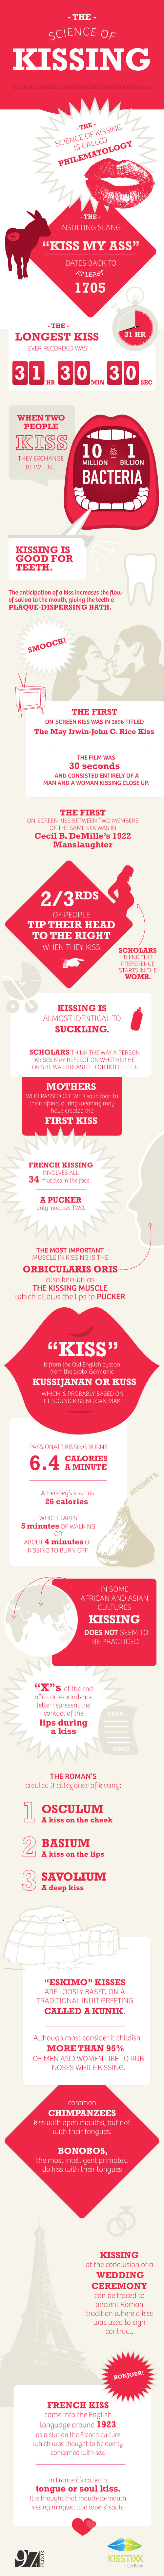 Facts-About-Kissing